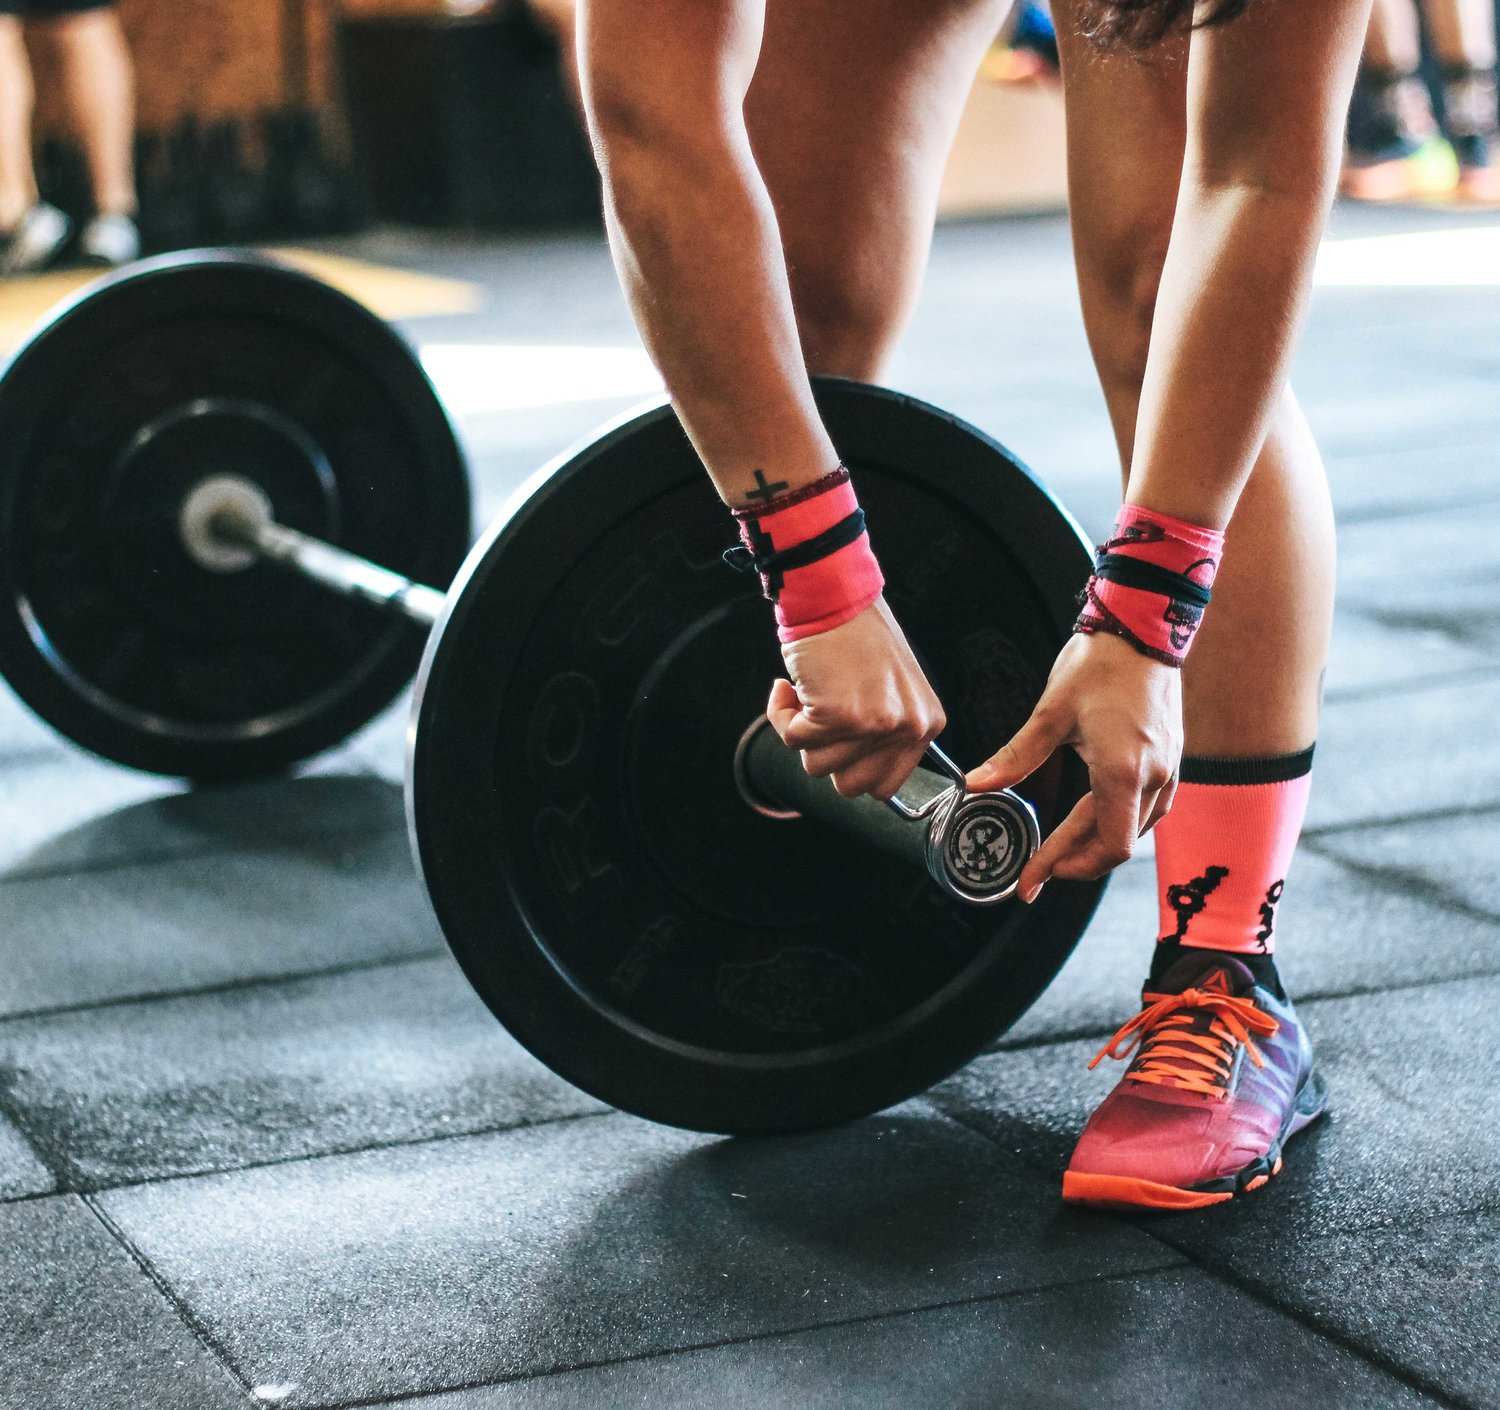 1a6e8fd36a93 Intro to Weightlifting 101 Workshop — Envision Fitness